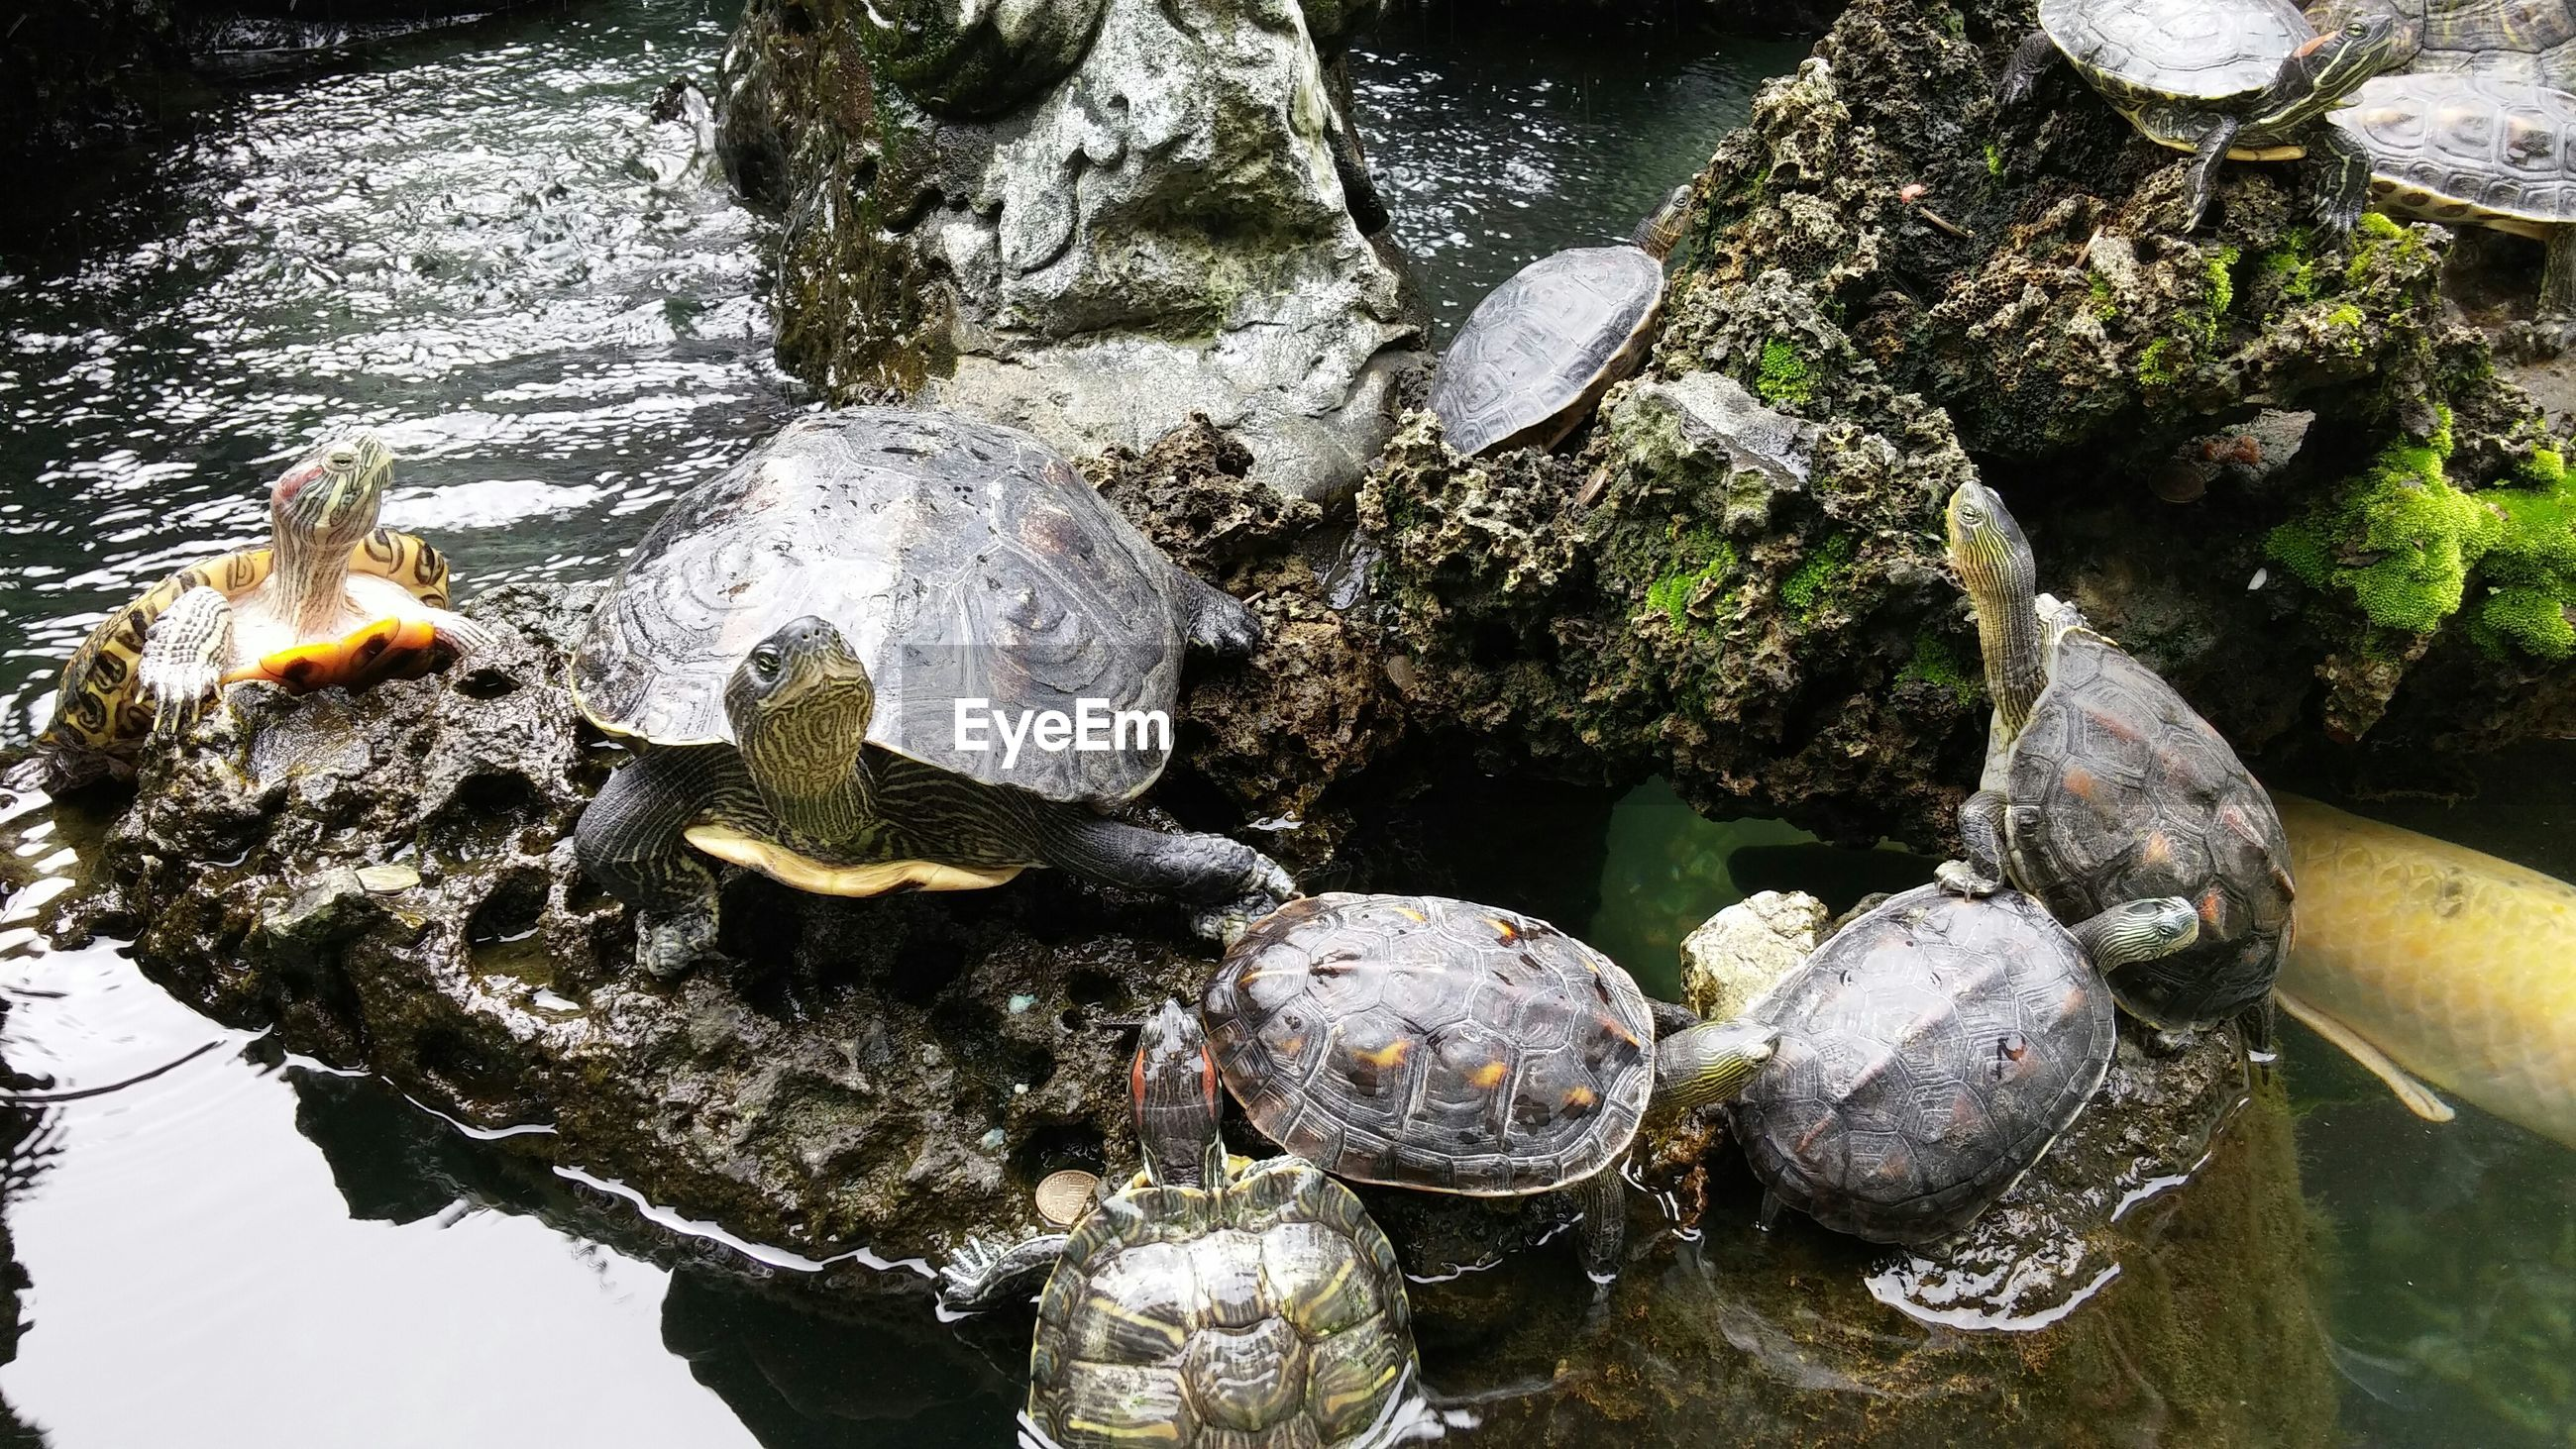 High angle view of turtles on rock in pond